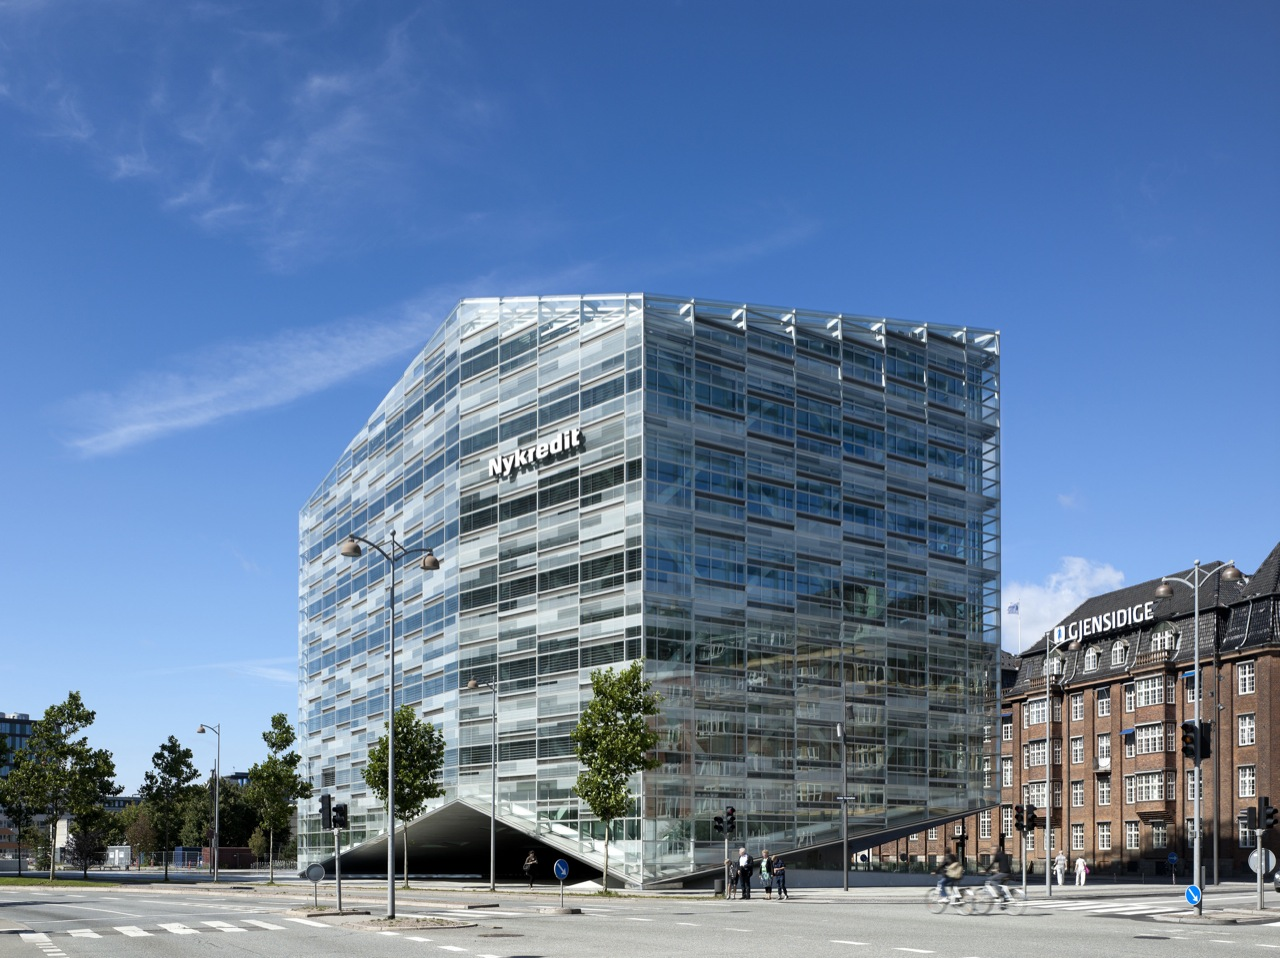 The Crystal Schmidt Hammer Lassen Architects ArchDaily